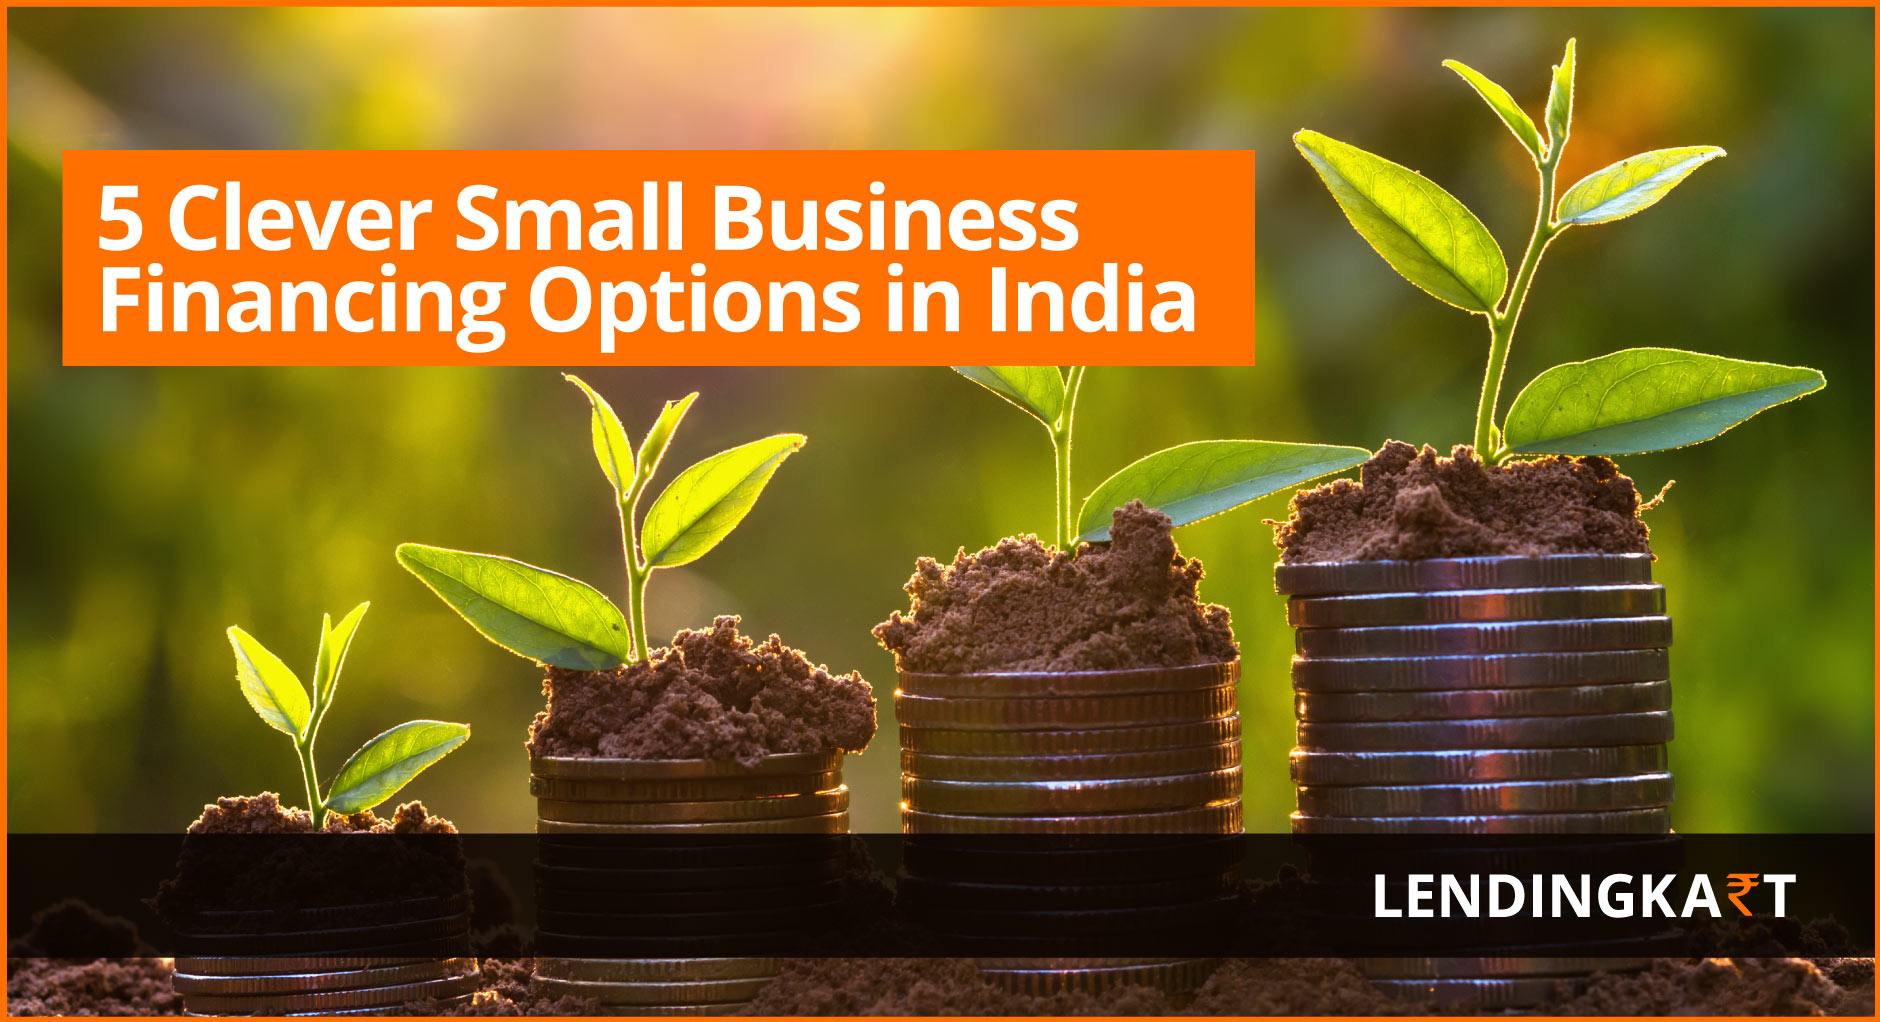 Small Business Financing Options